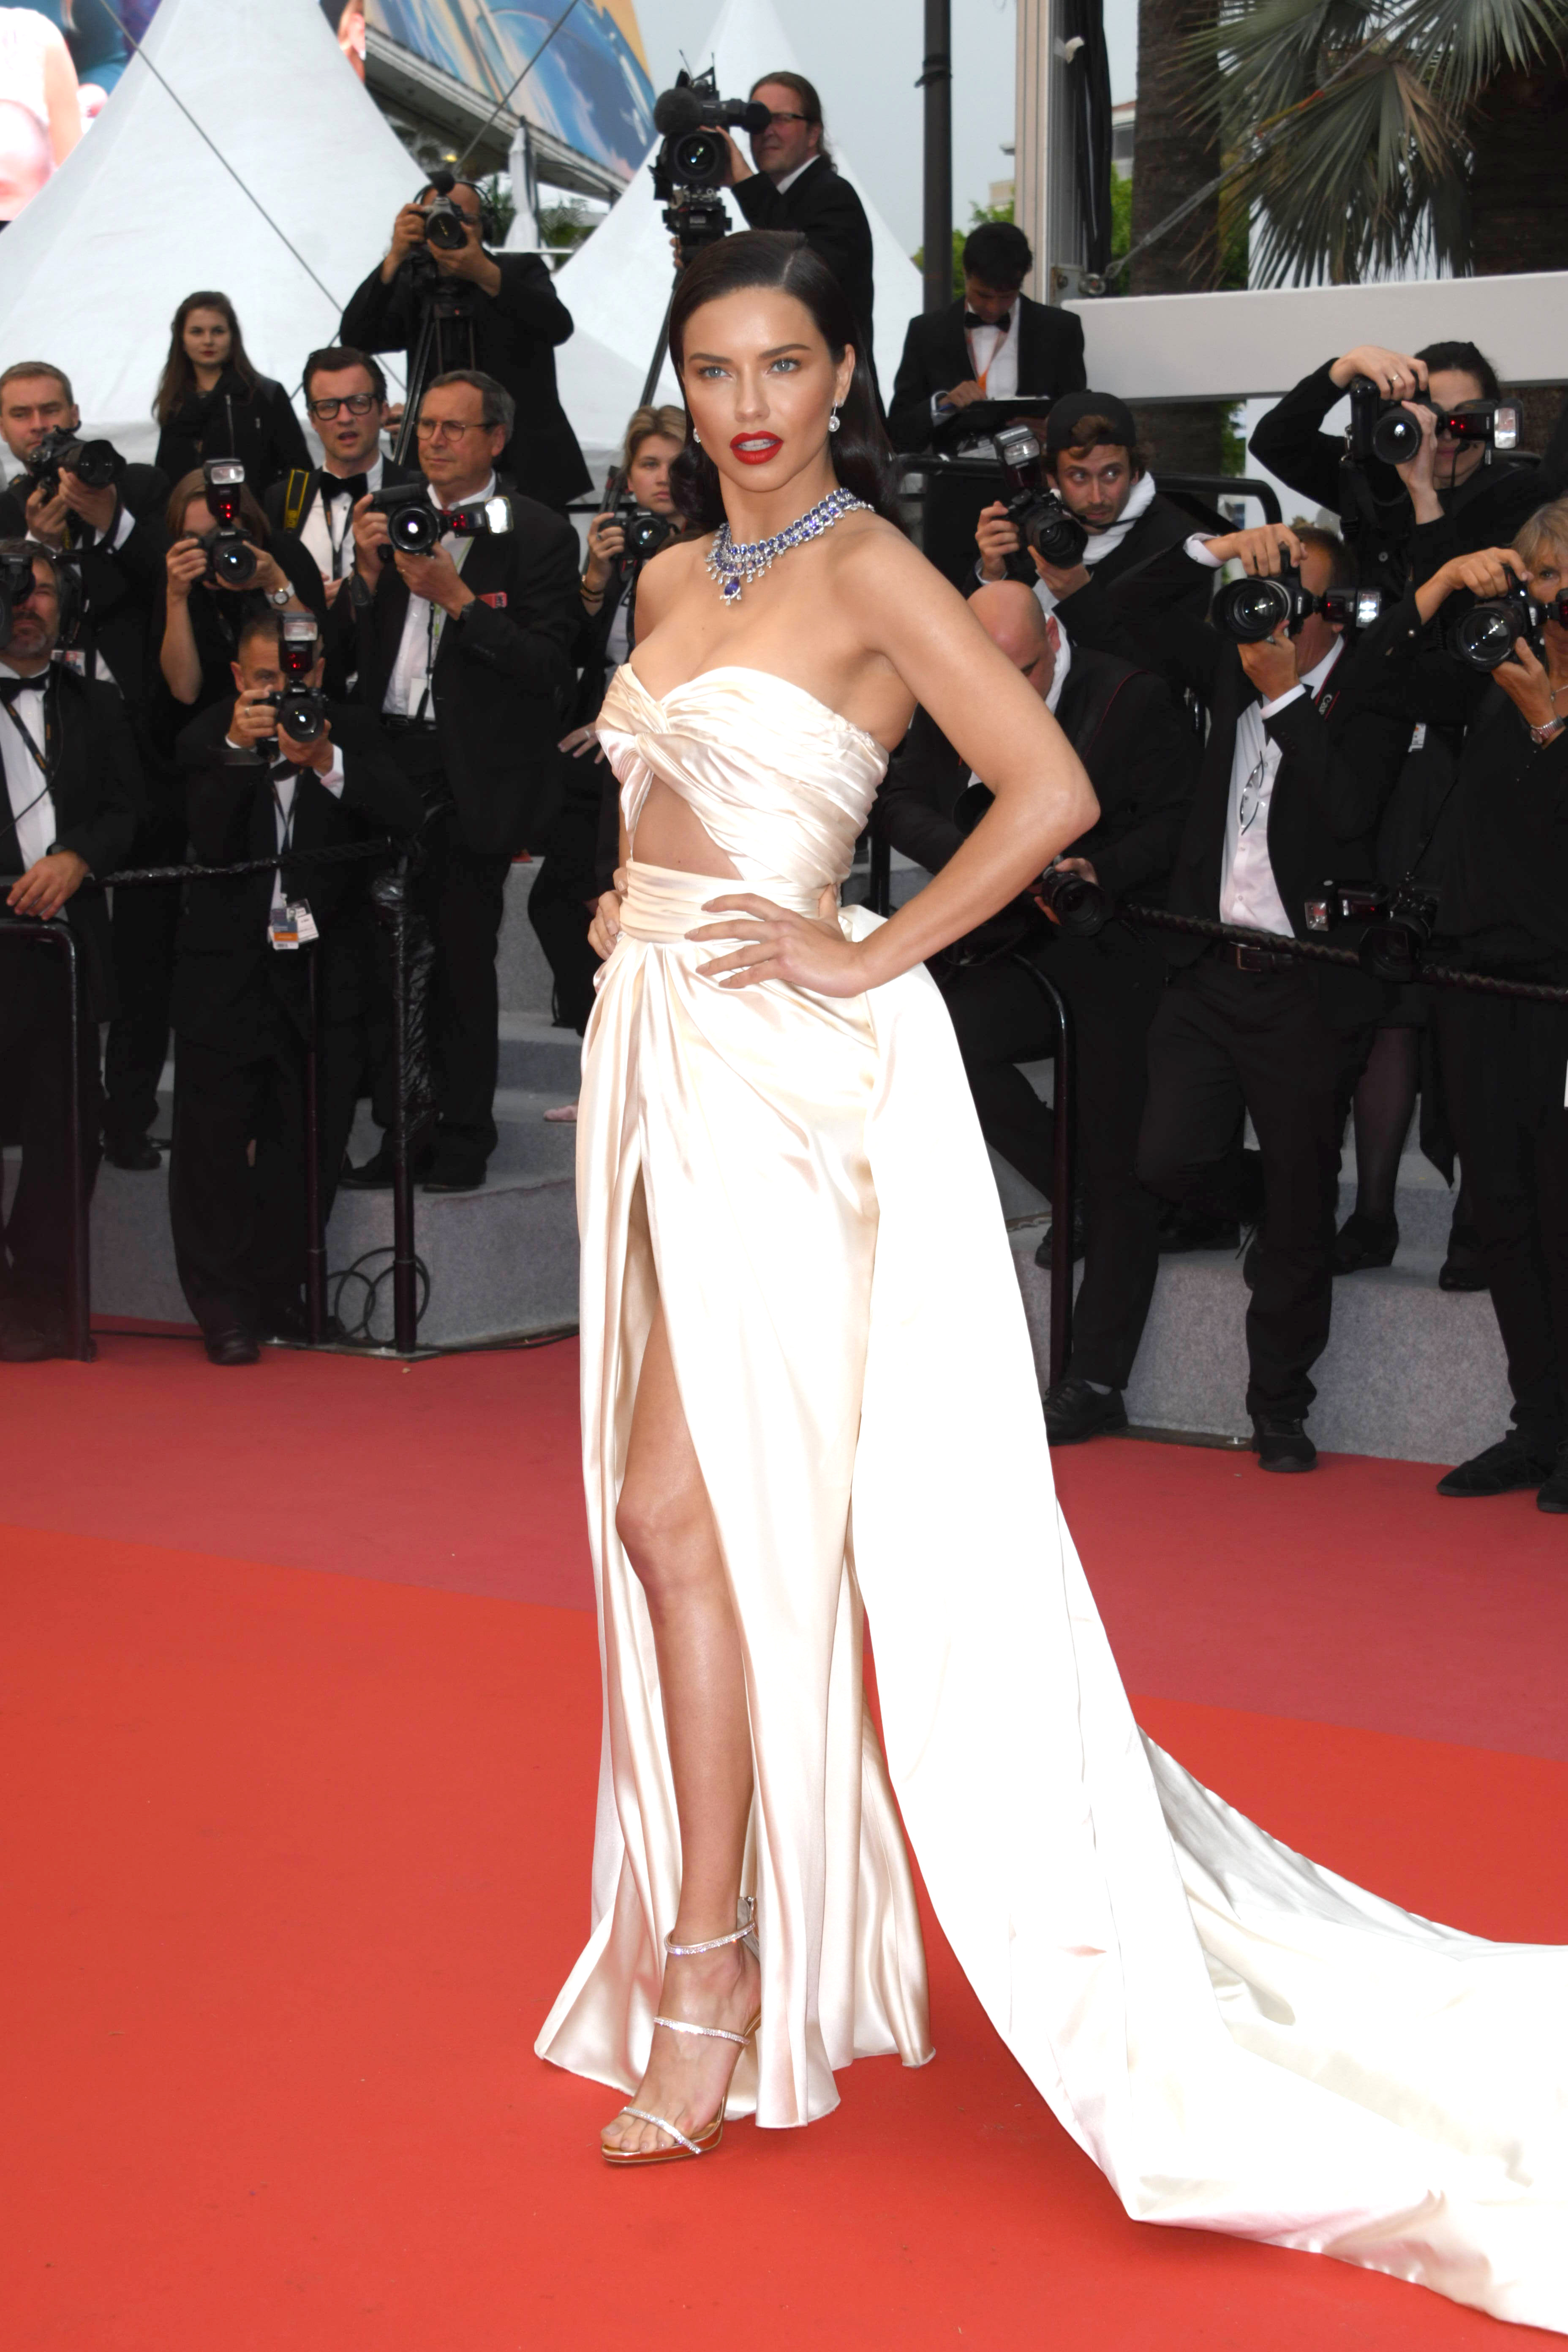 Get The Look For Less: Adriana Lima At The Cannes Film Festival